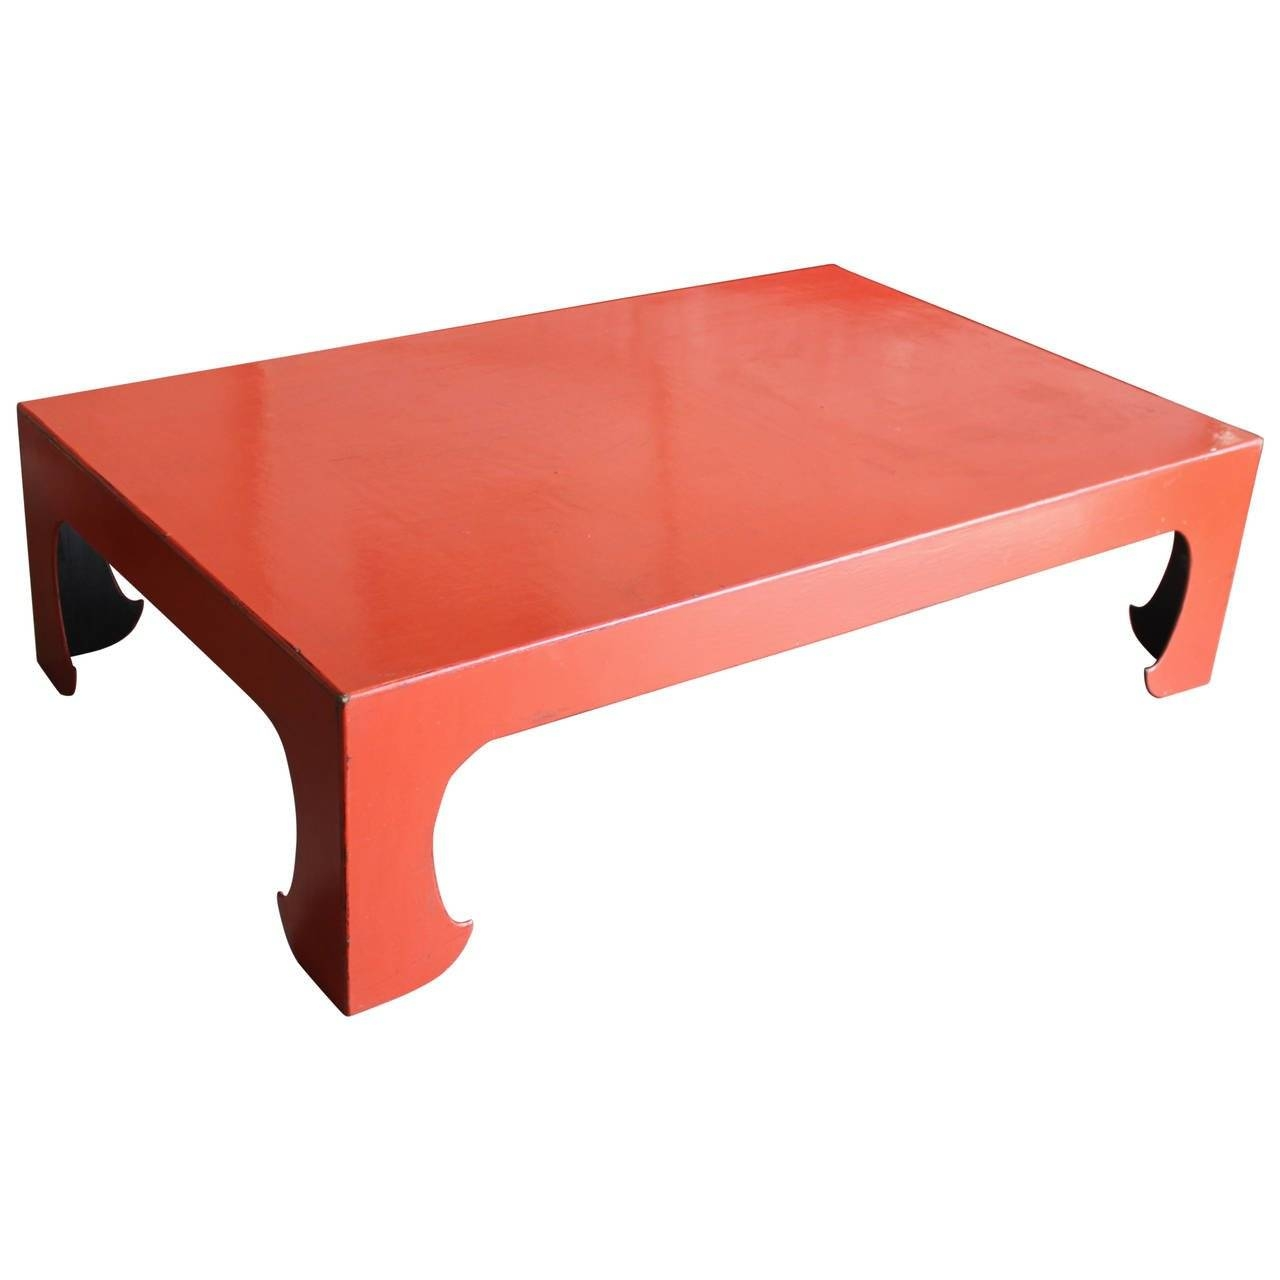 Vintage Red Coral Lacquered Chinese Coffee Table For Sale At 1Stdibs within Red Coffee Table (Image 30 of 30)